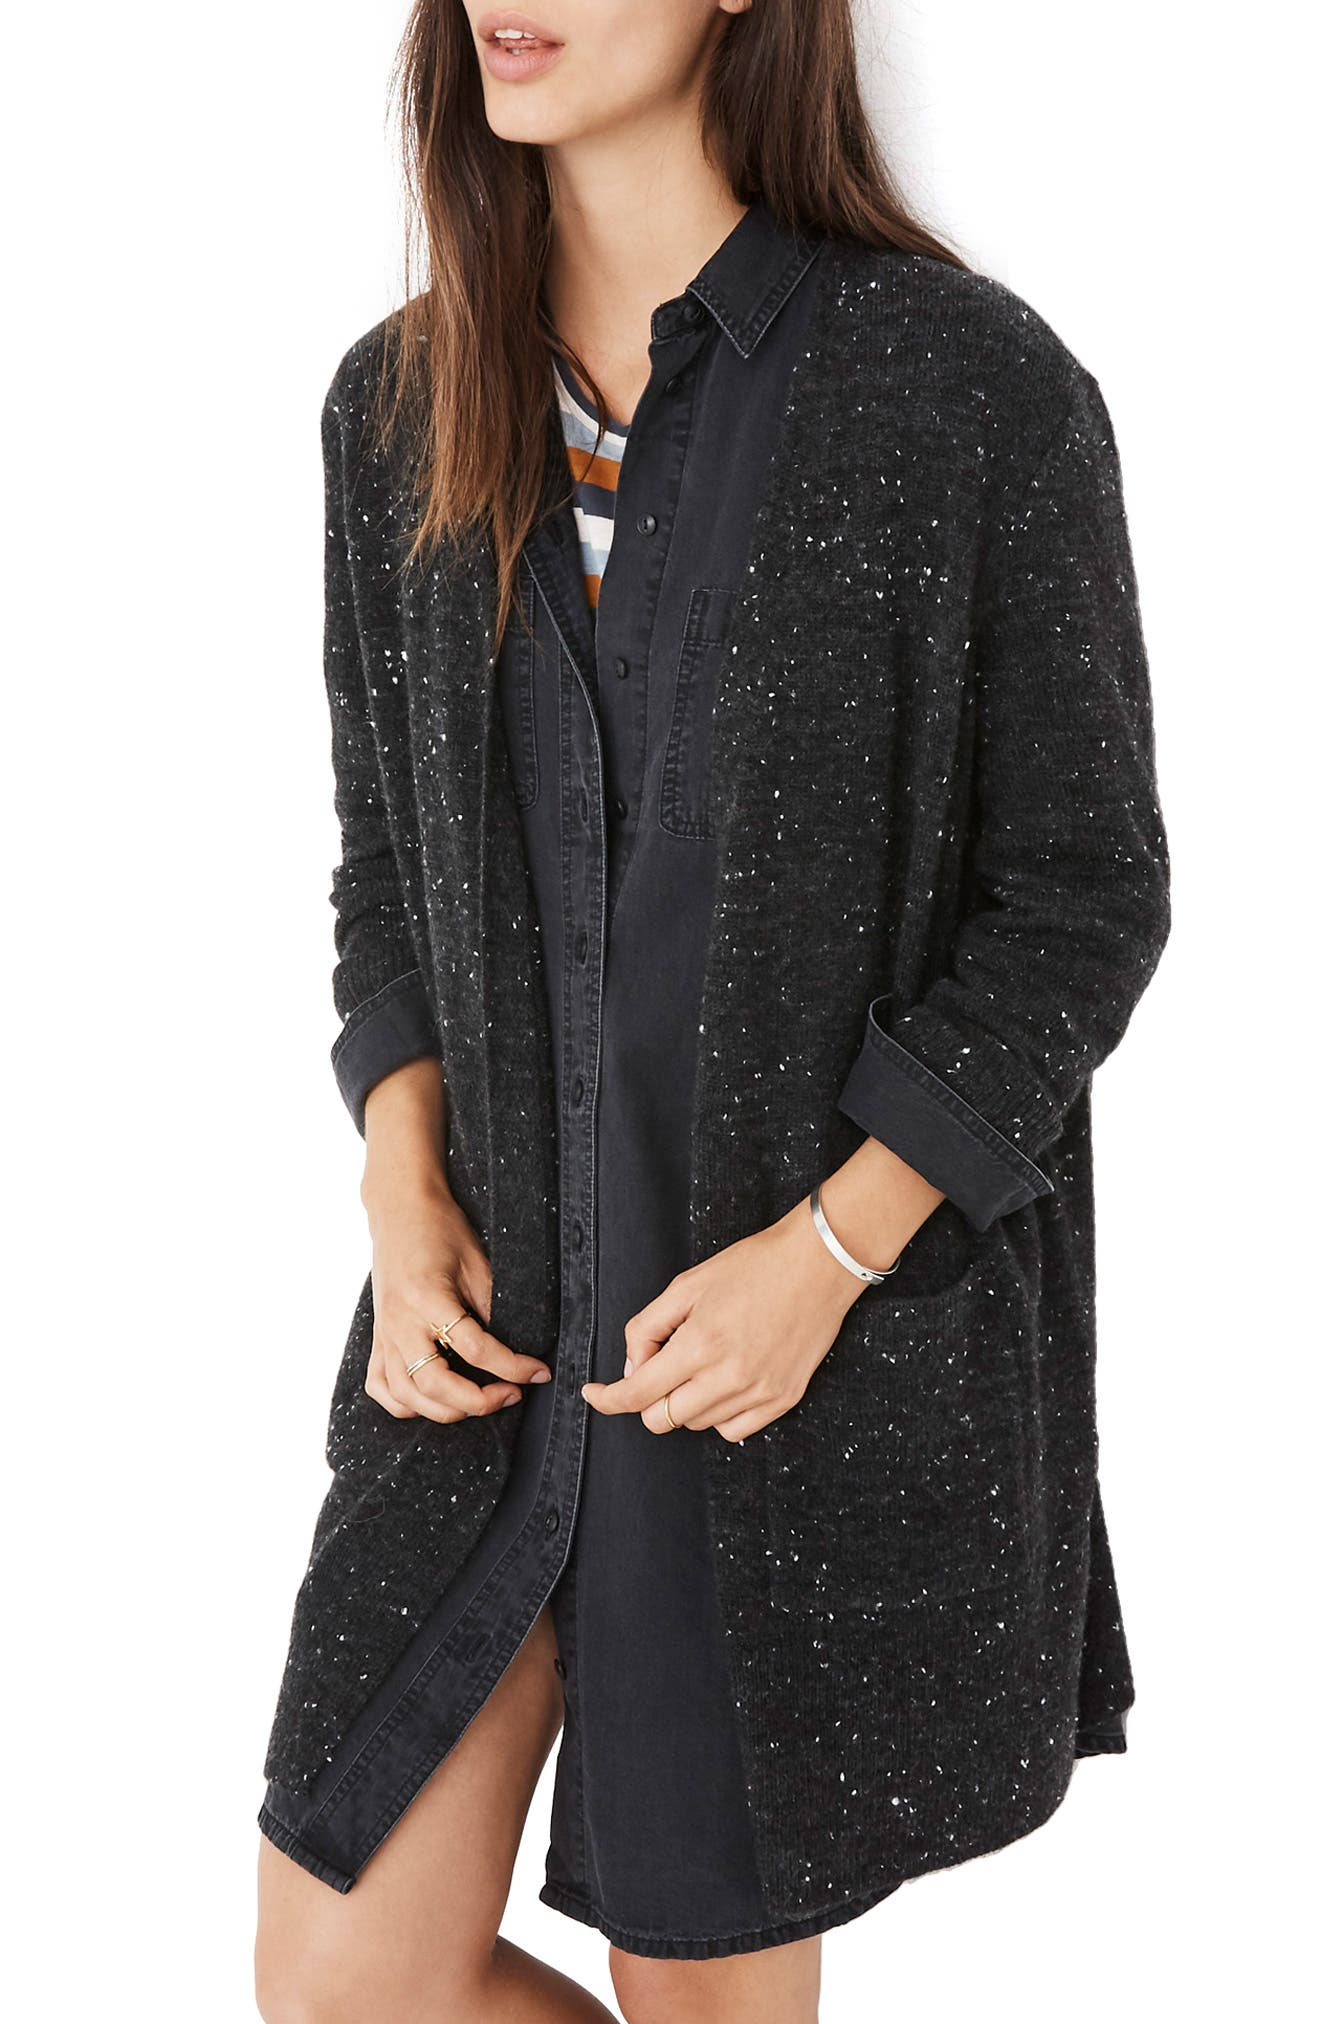 MADEWELL, Donegal Kent Cardigan Sweater, Alternate thumbnail 3, color, DONEGAL STORM GRAY